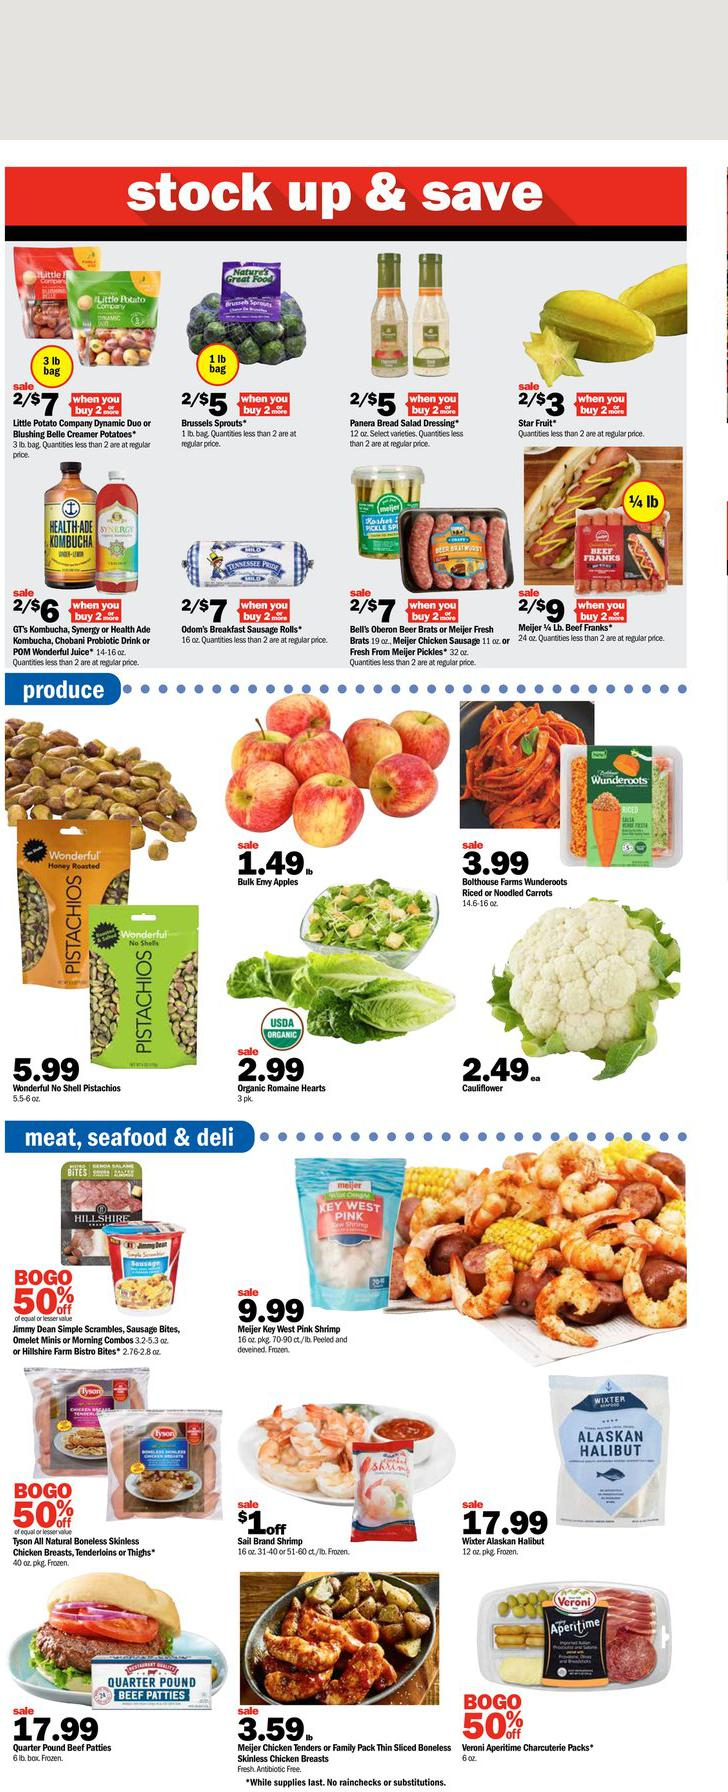 01.08.2021 Meijer ad 4. page